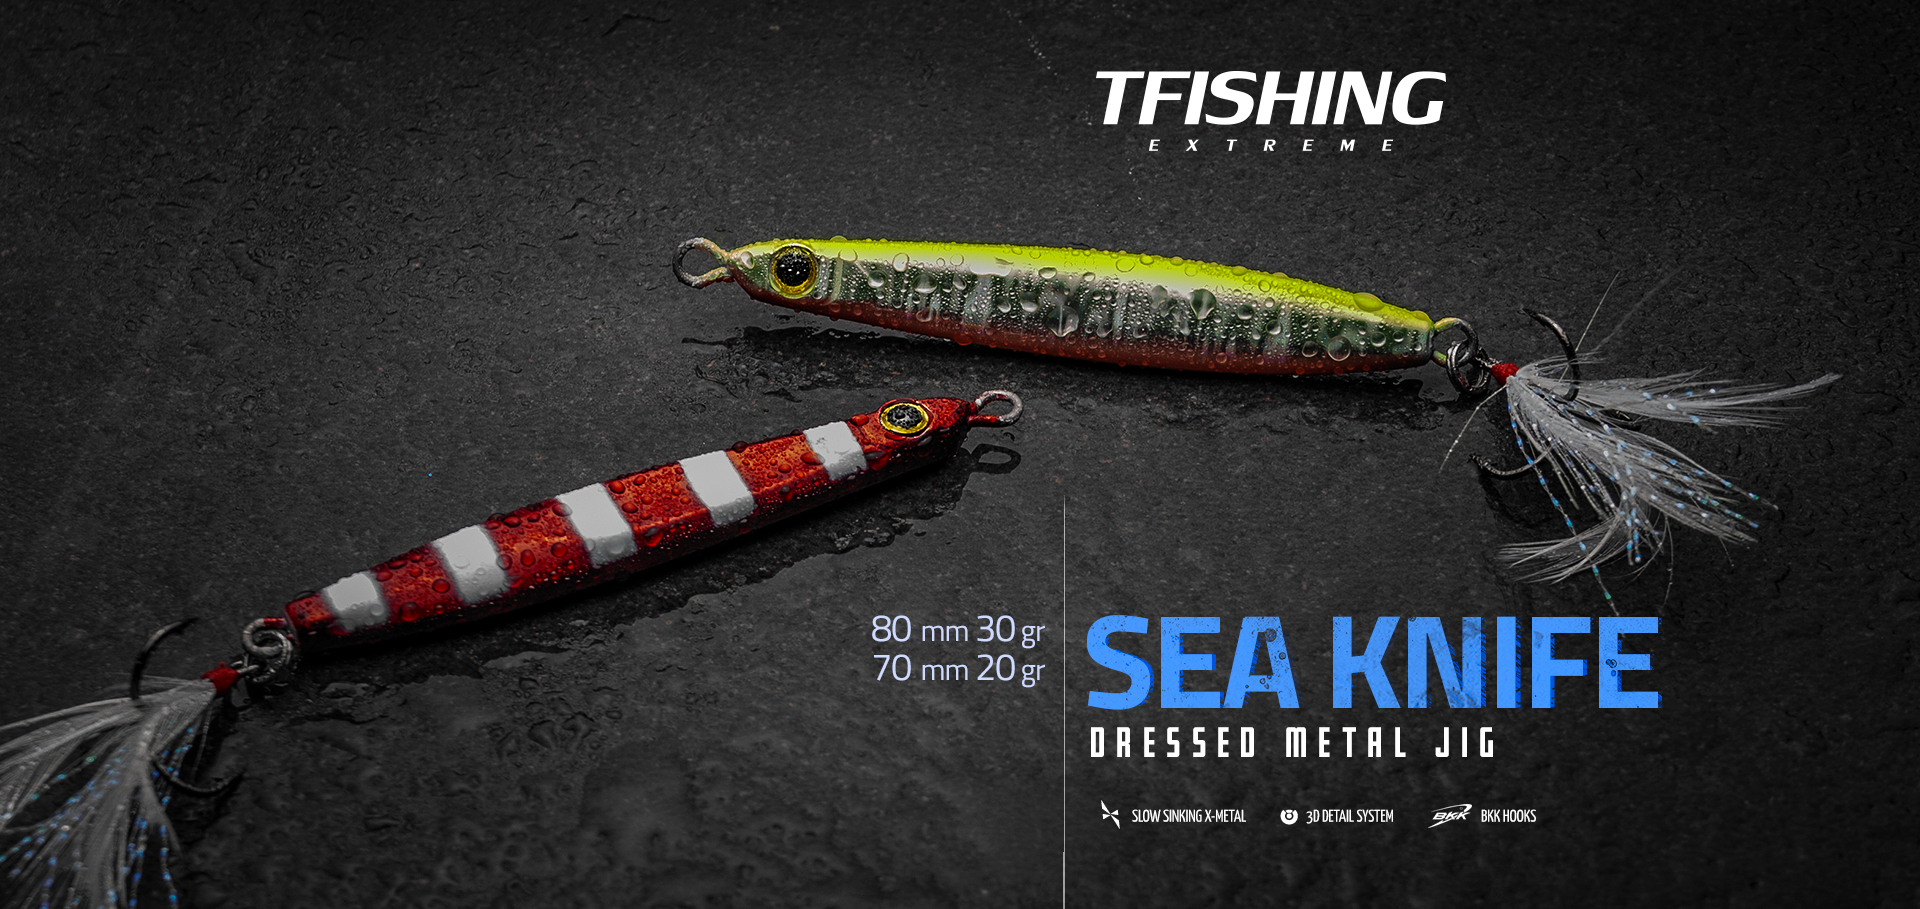 Metal Jig T-fishing Sea Knife